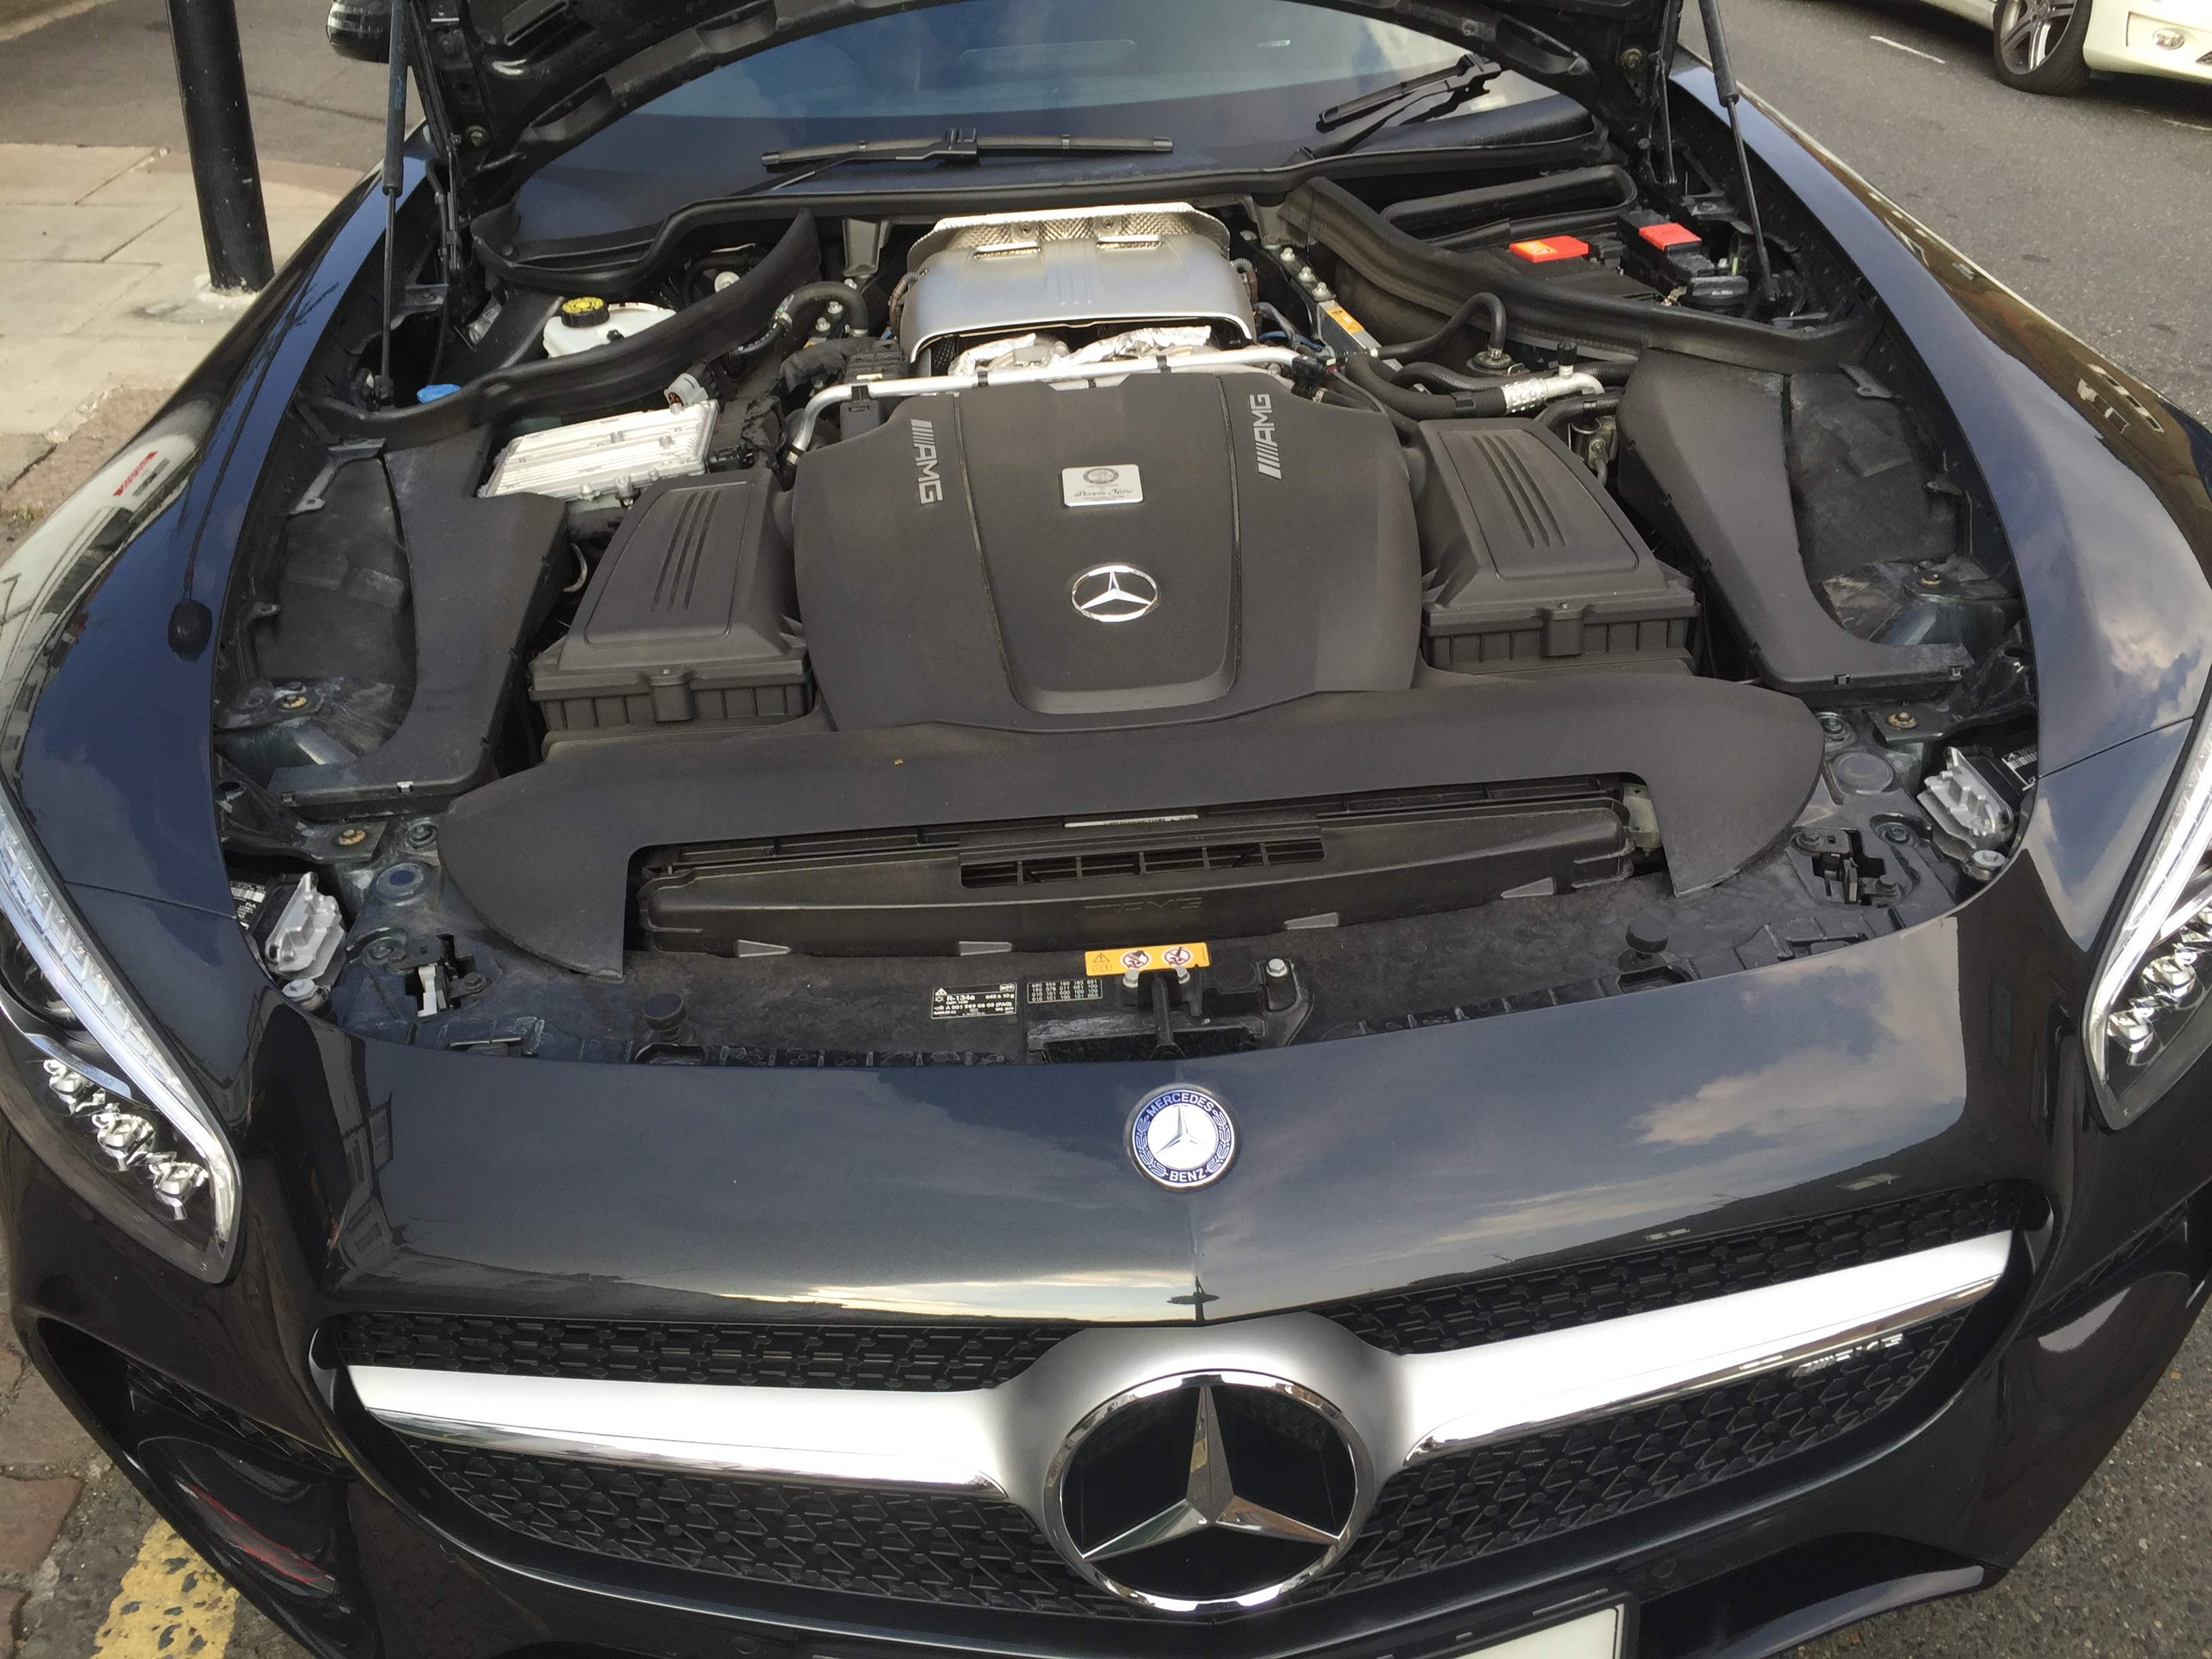 Under the hood of a Mercedes car